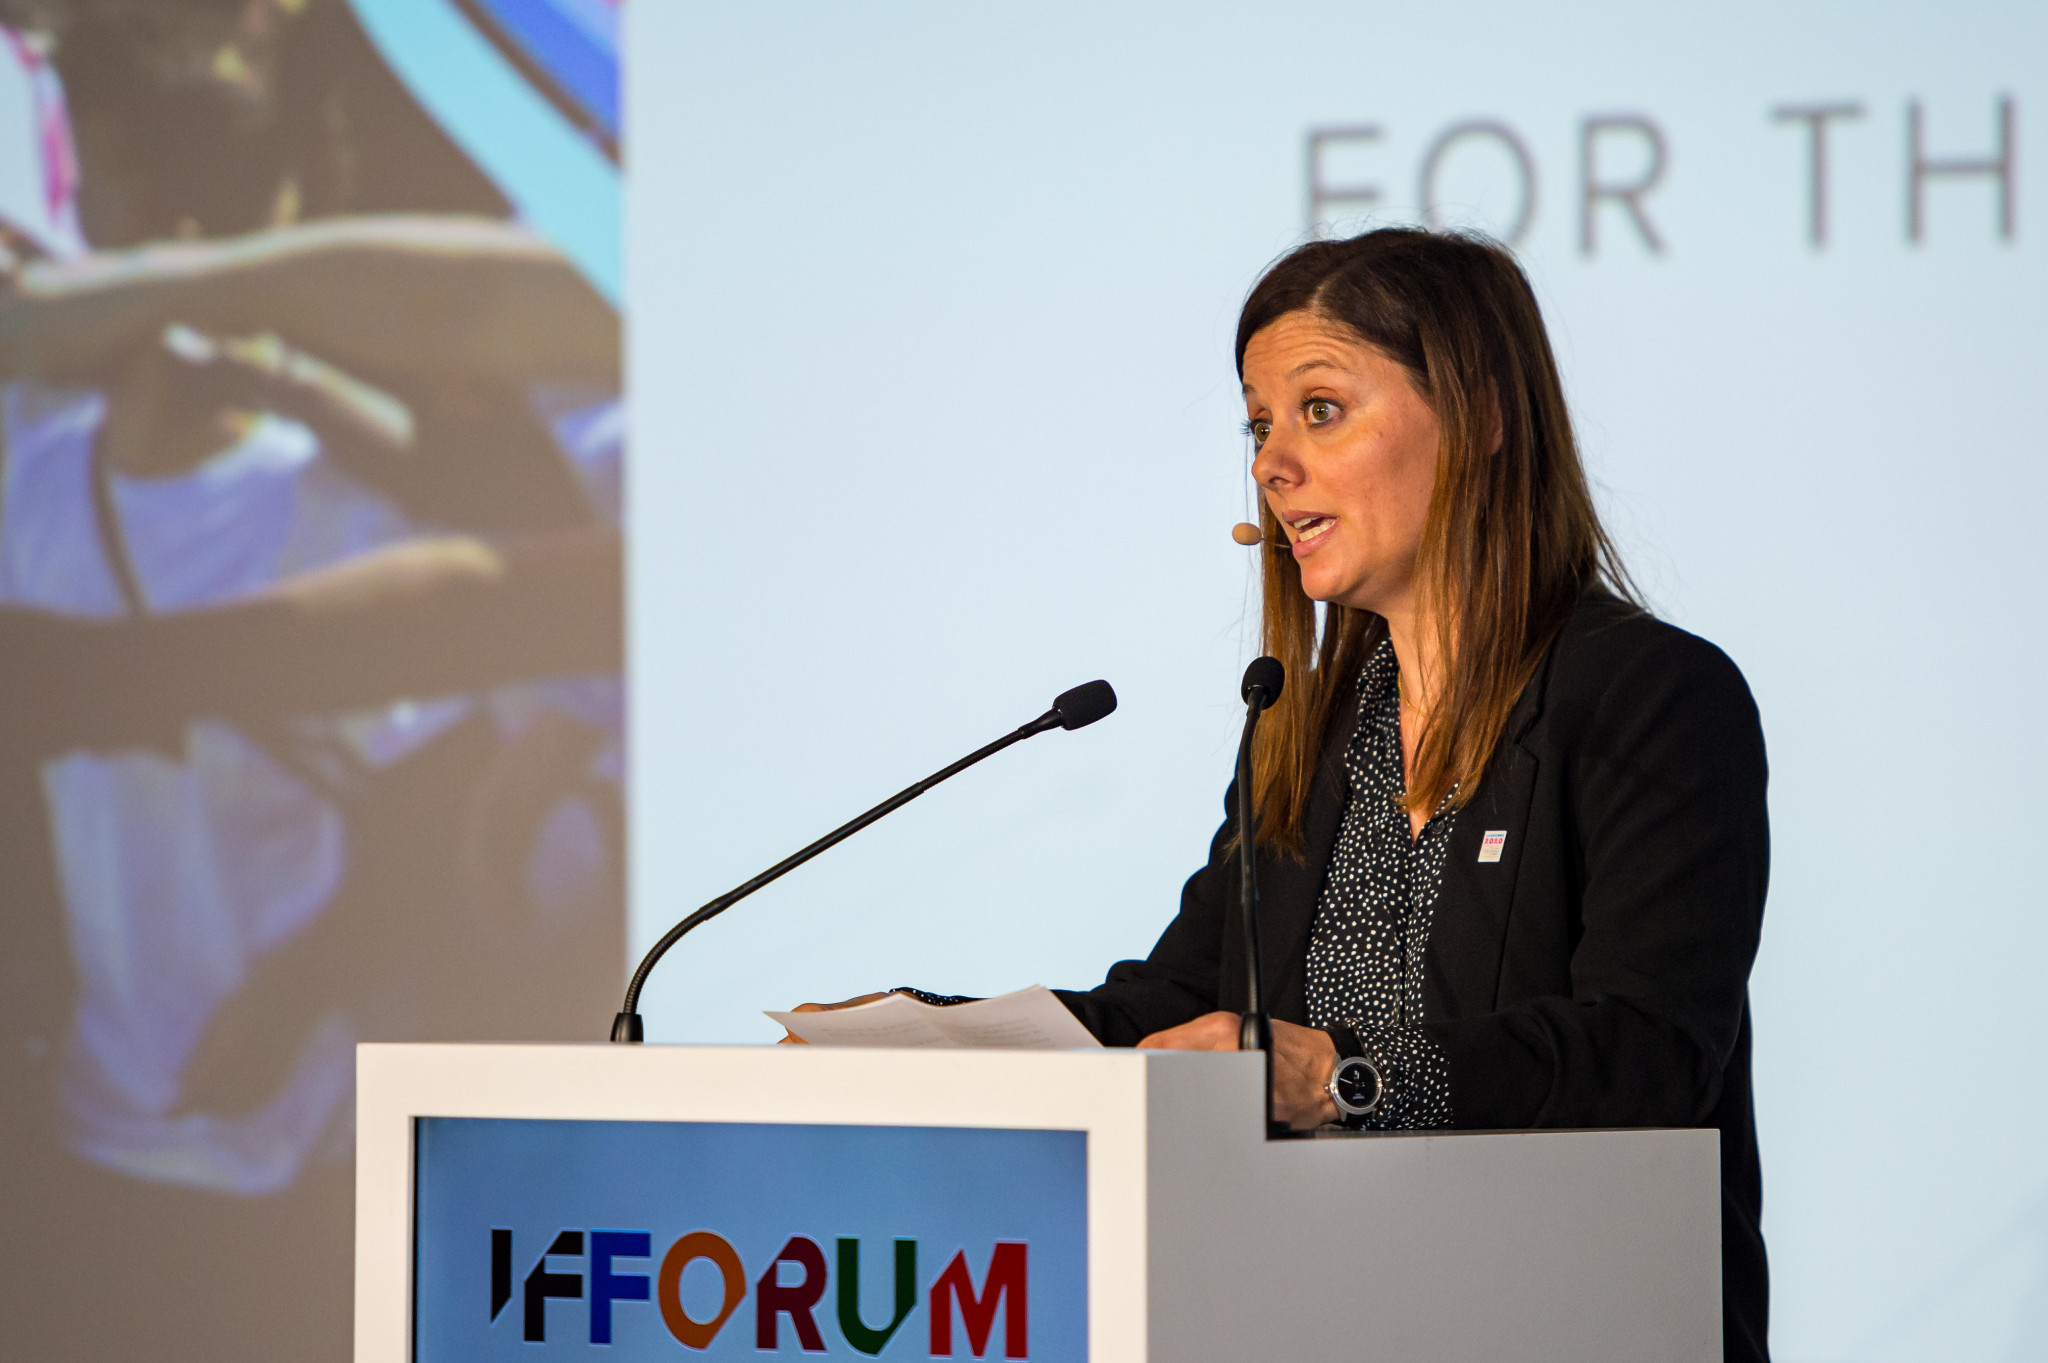 Lausanne 2020 can play role in empowering young athletes, claims Faivre